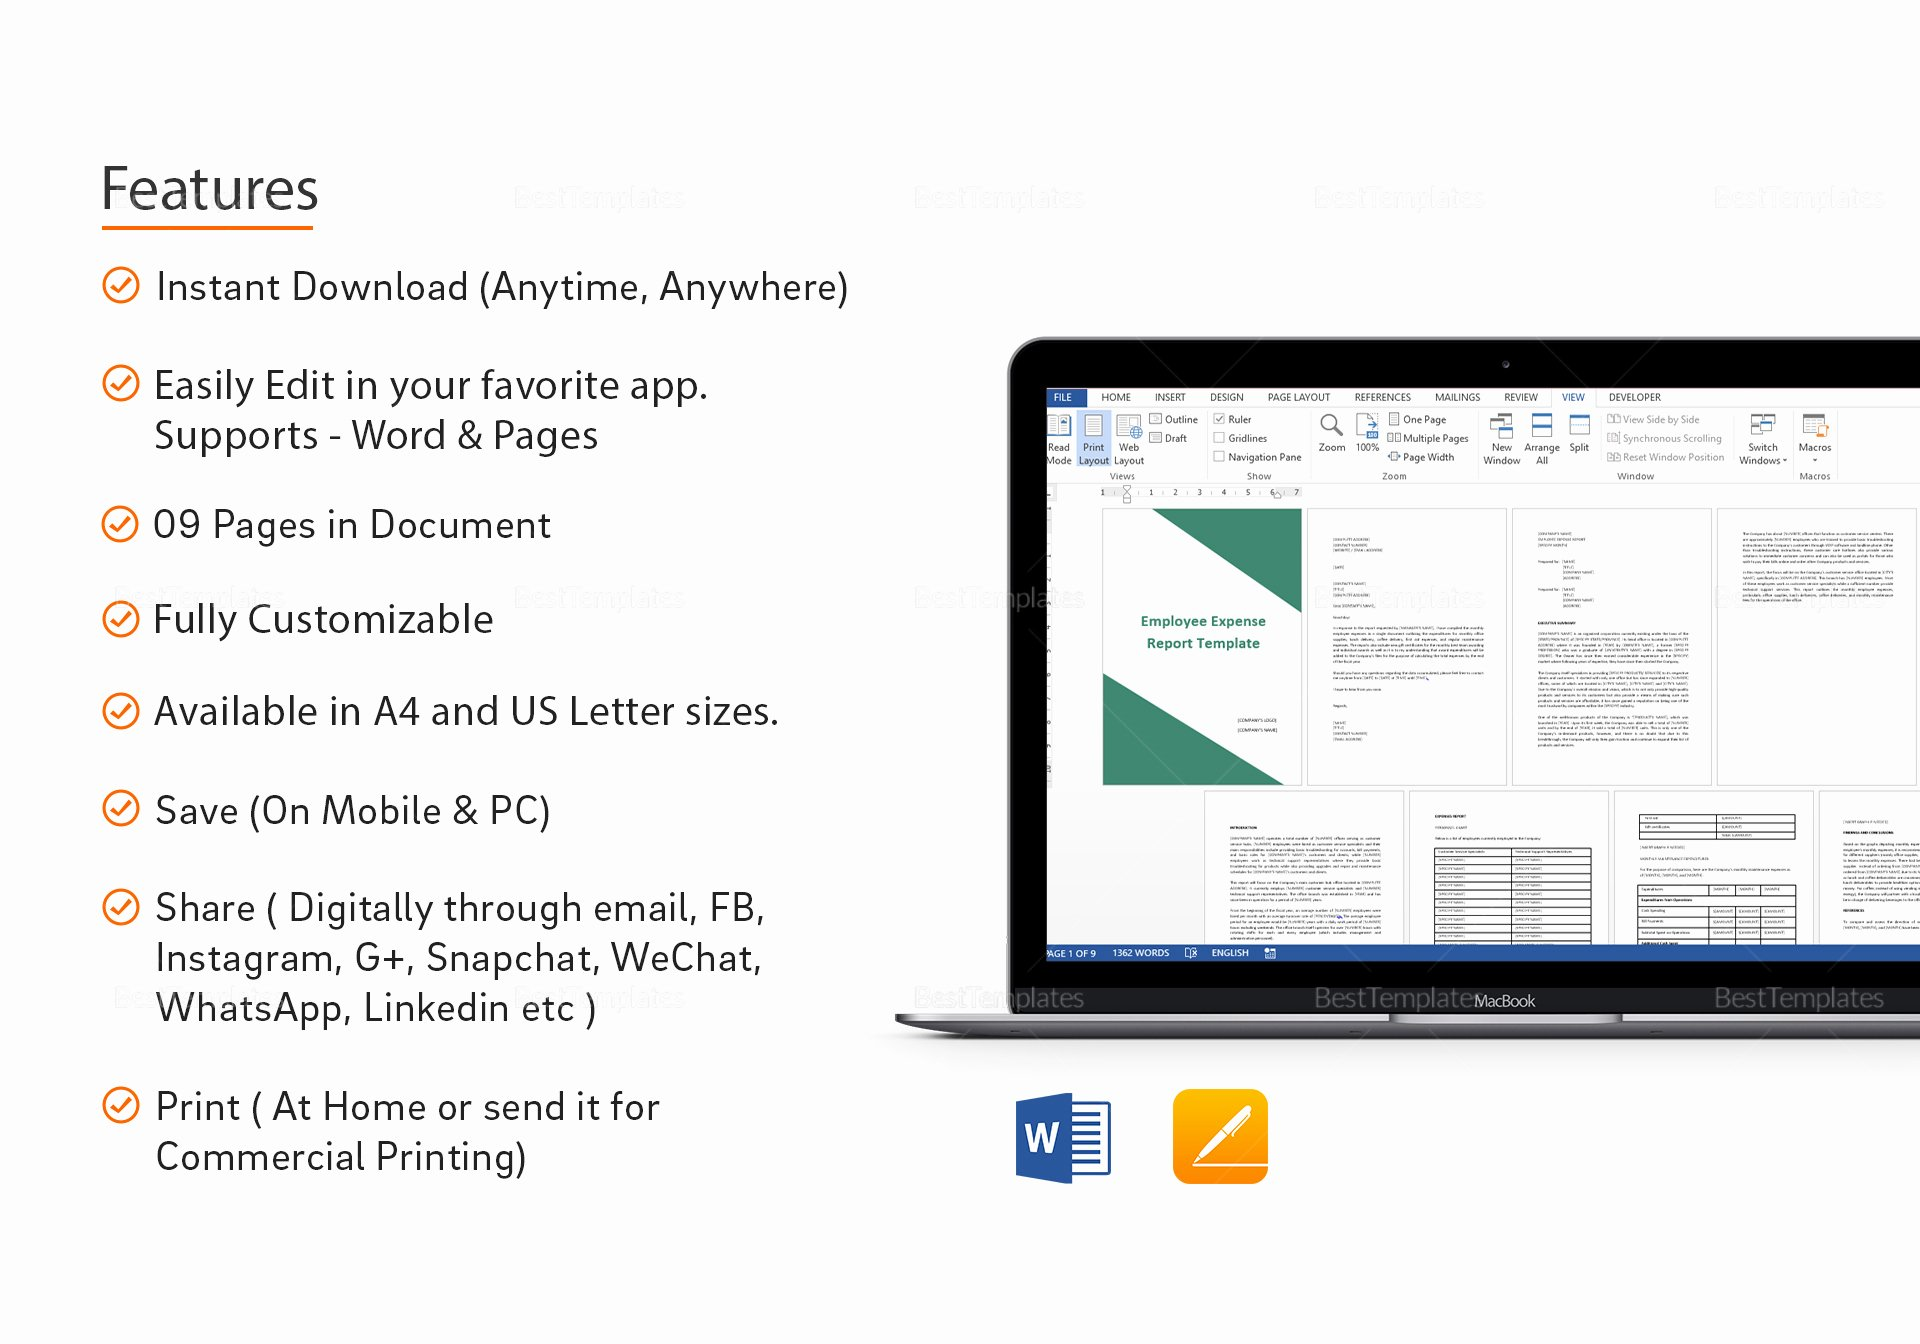 Employee Expense Report Template Unique Employee Expense Report Template In Word Google Docs